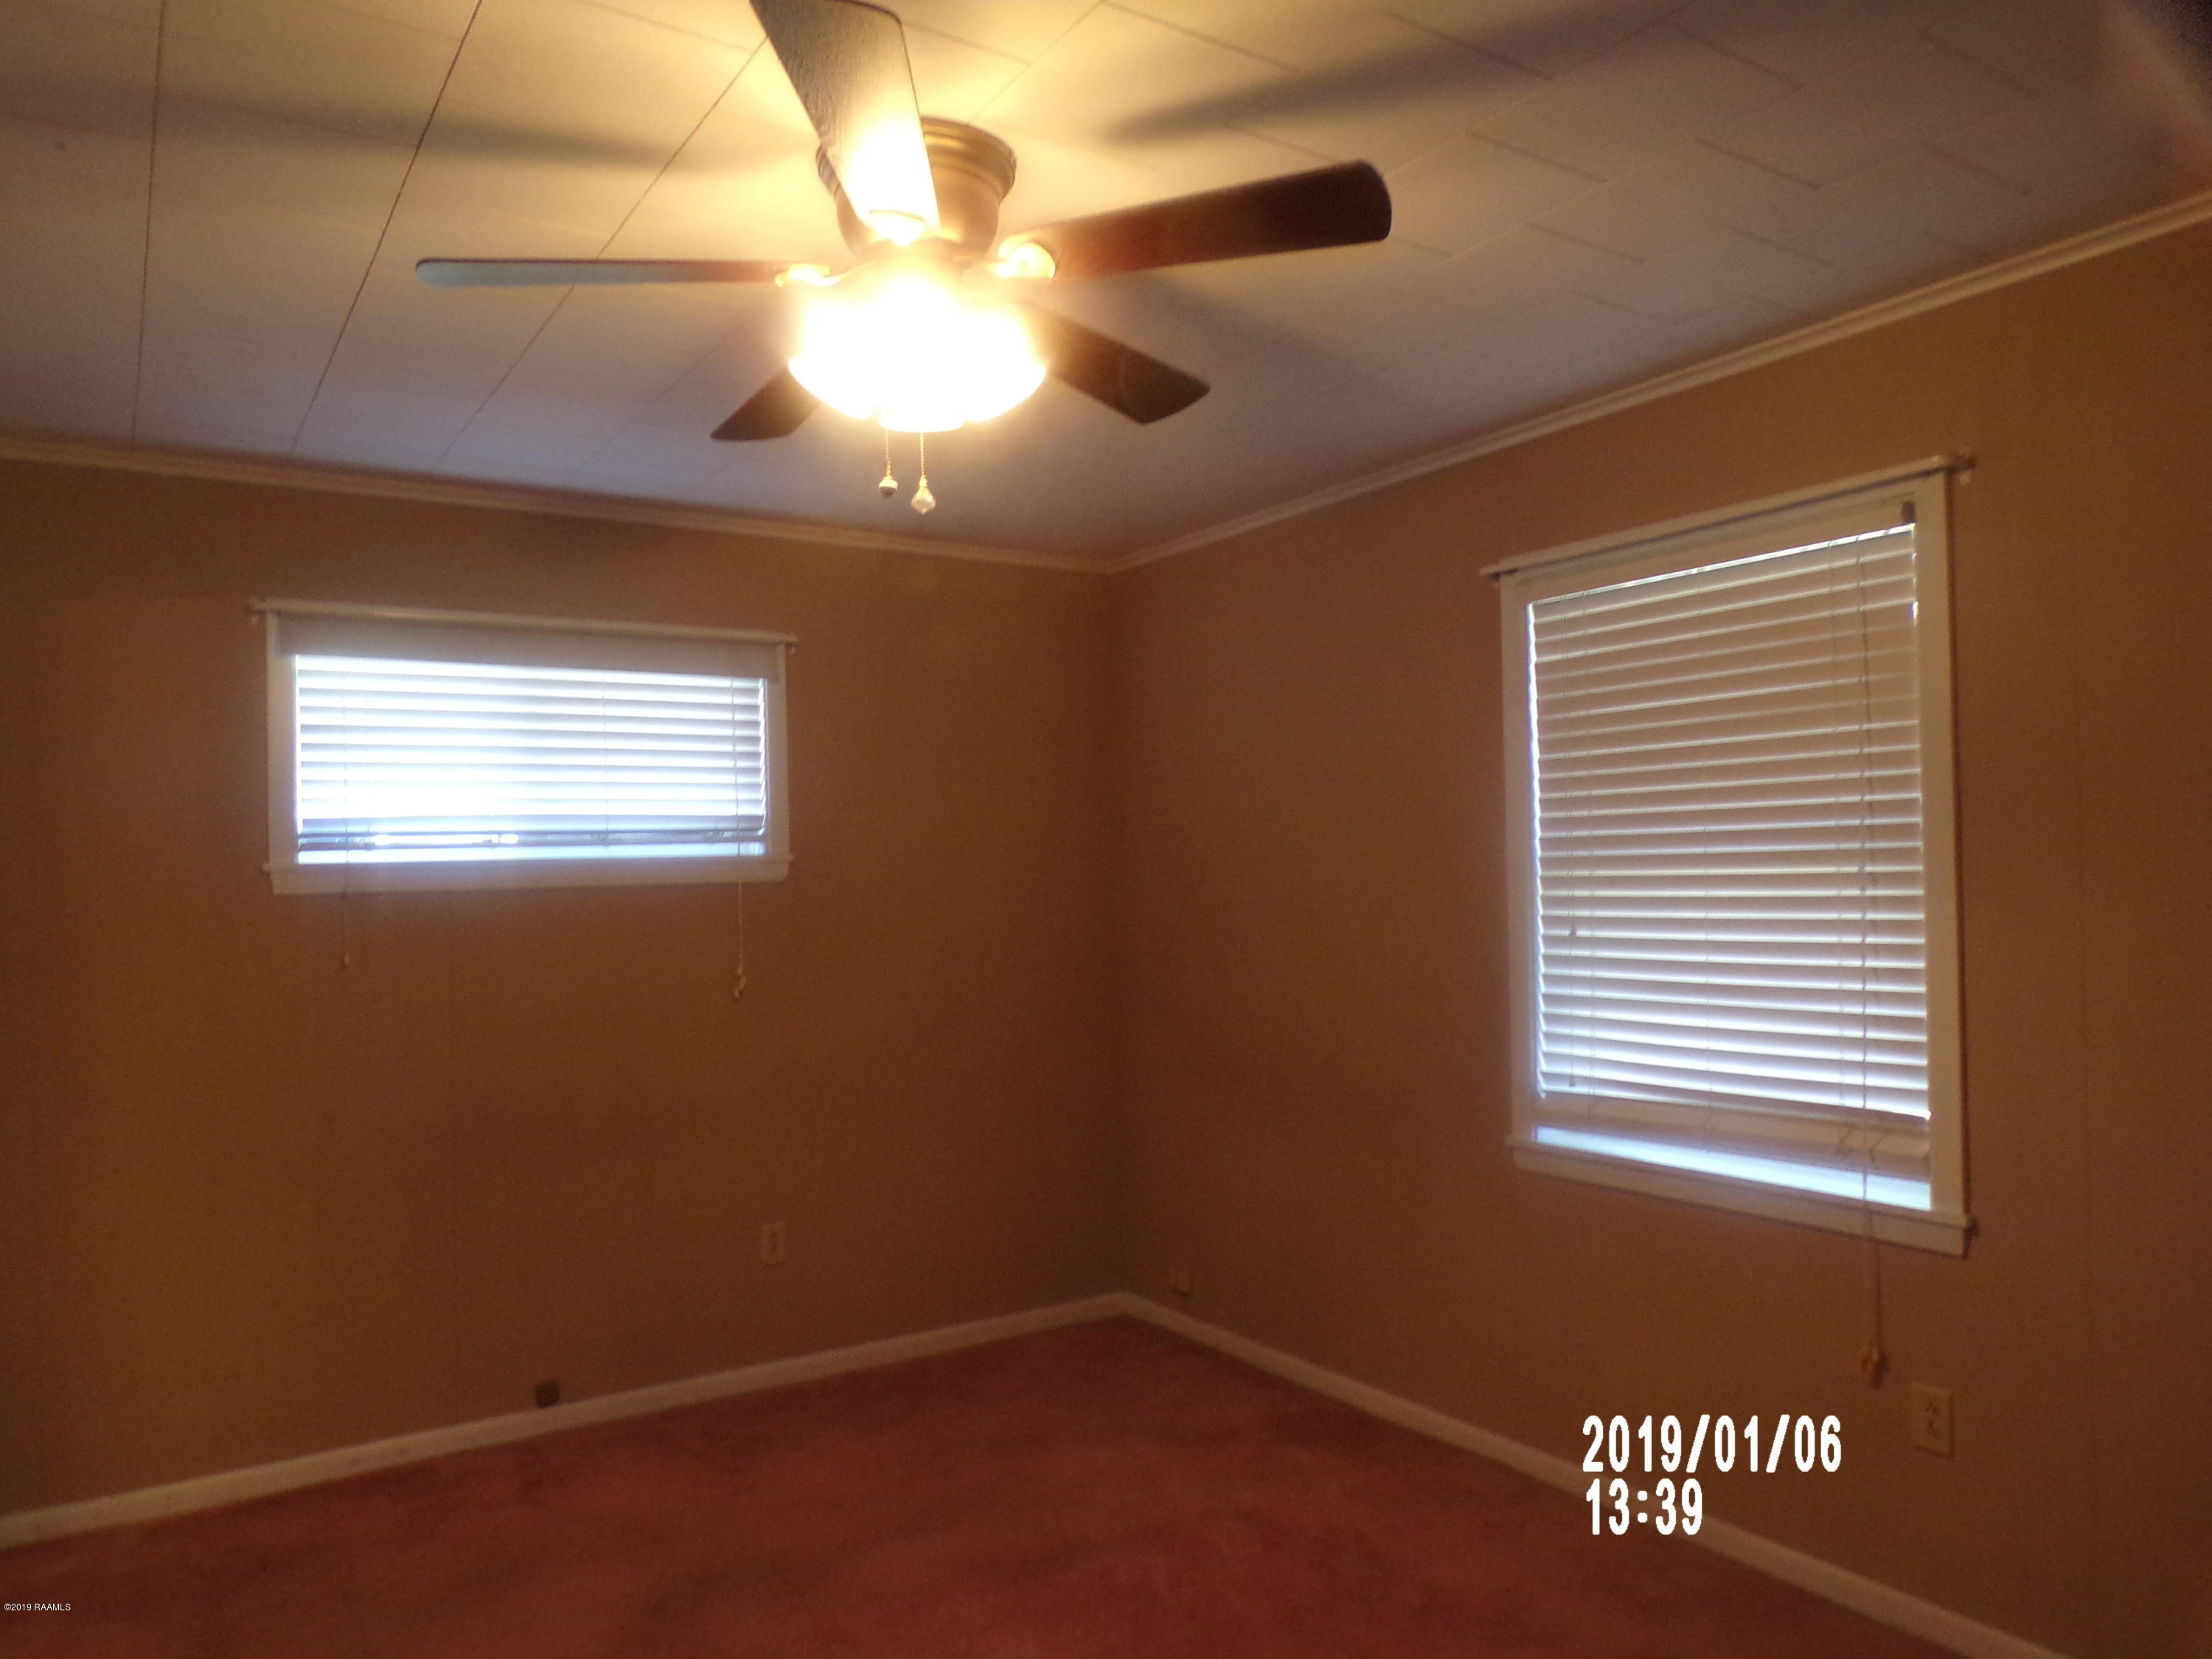 501 Pecan Drive, Franklin, LA 70538 Photo #12